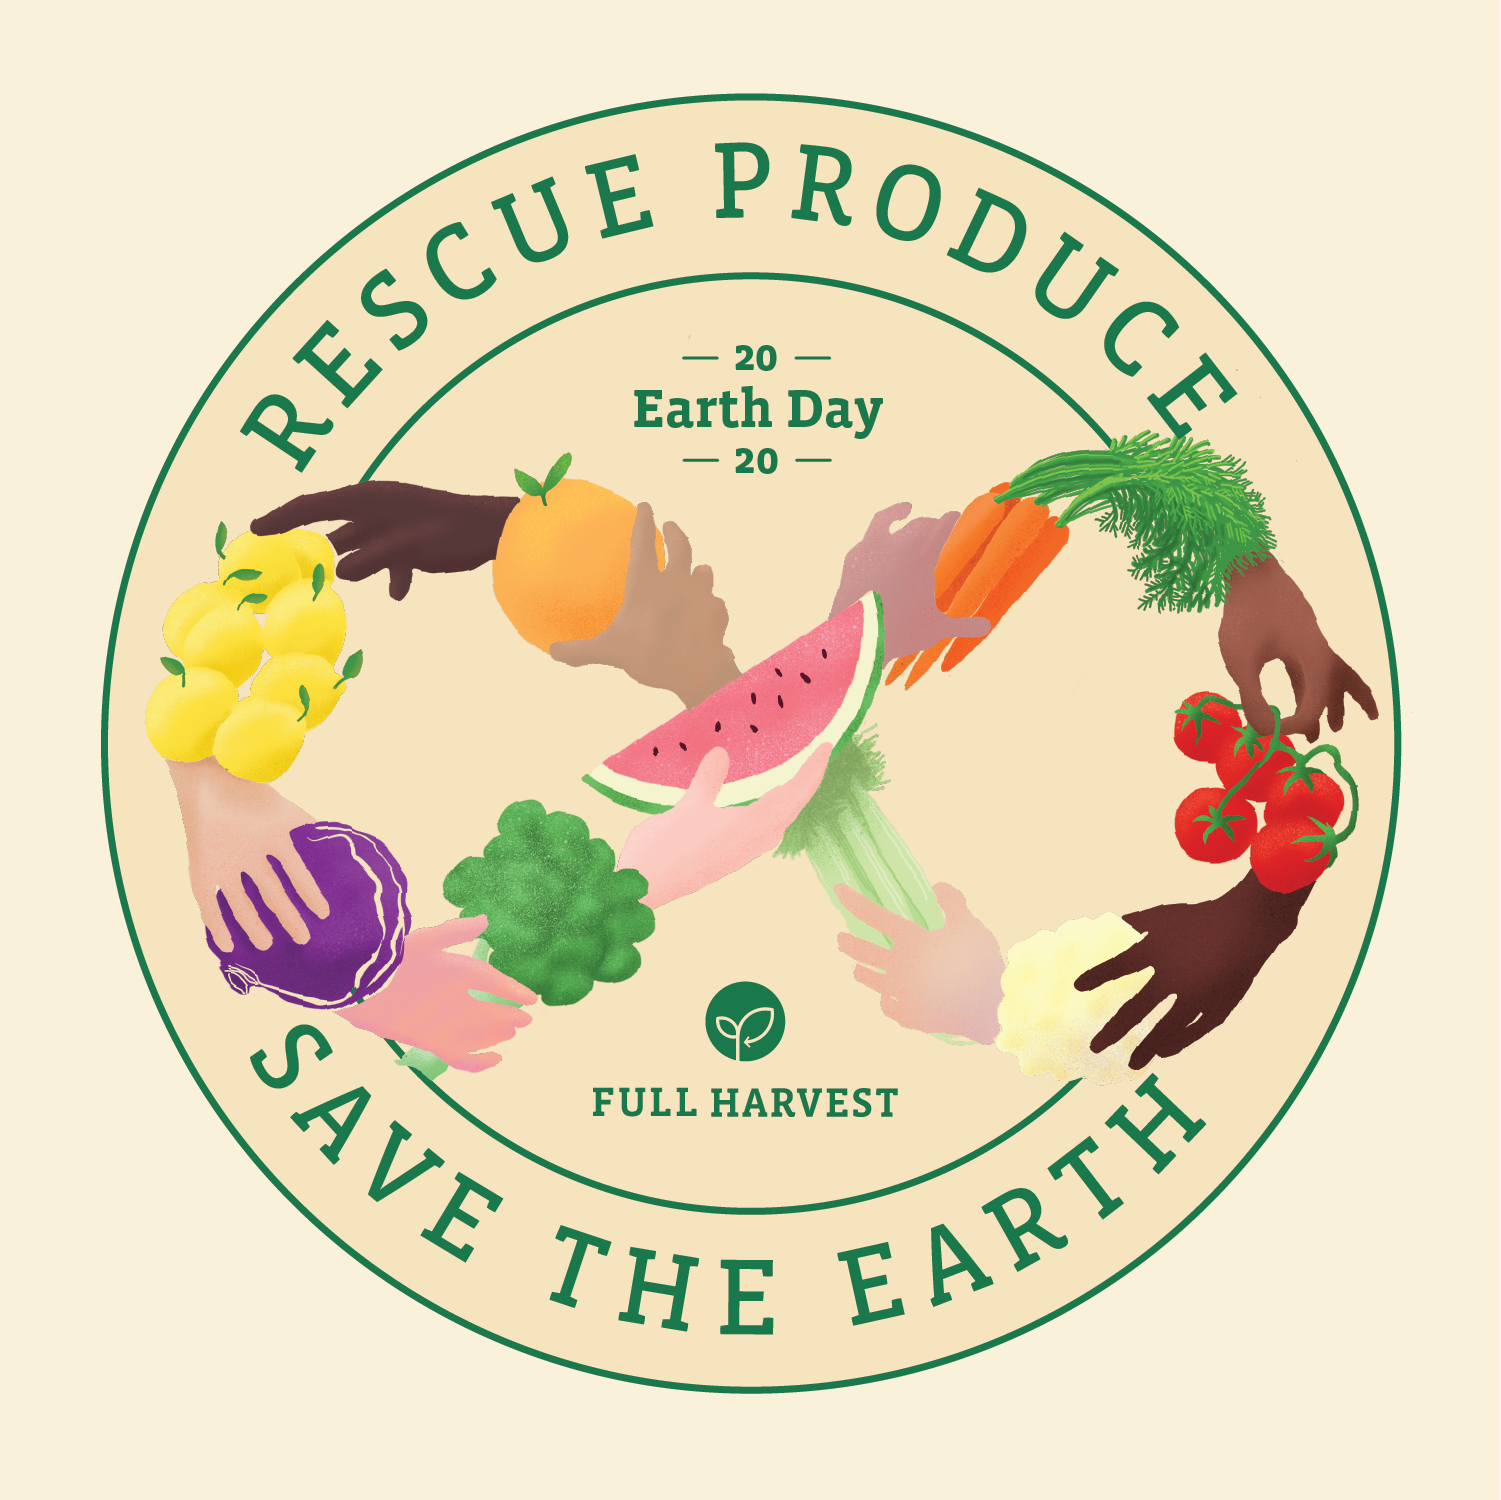 Rescue Produce Save the Earth Full Harvest